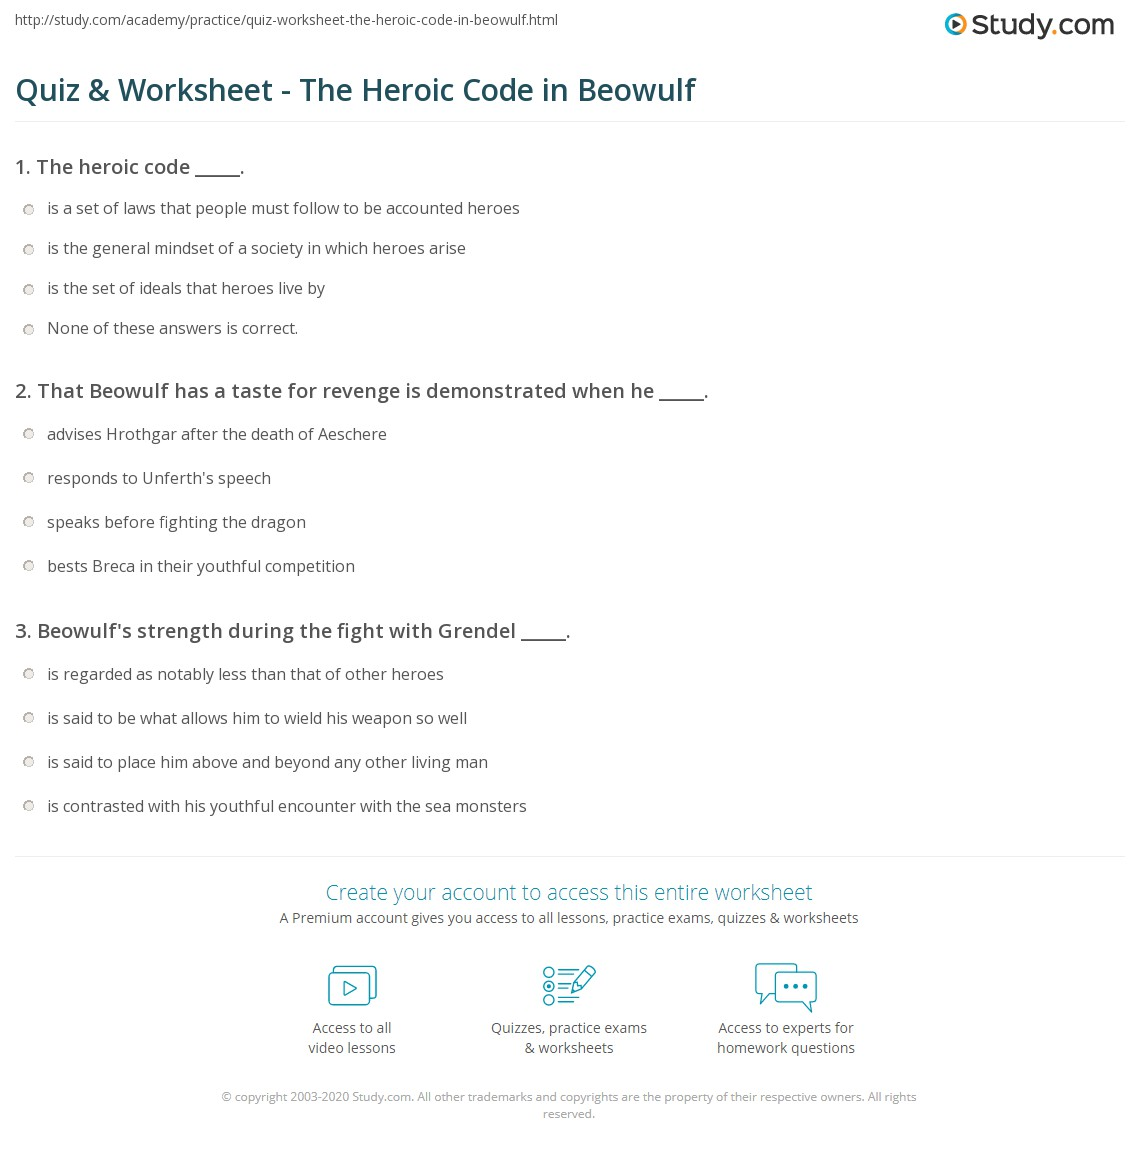 beowulf and the heroic code